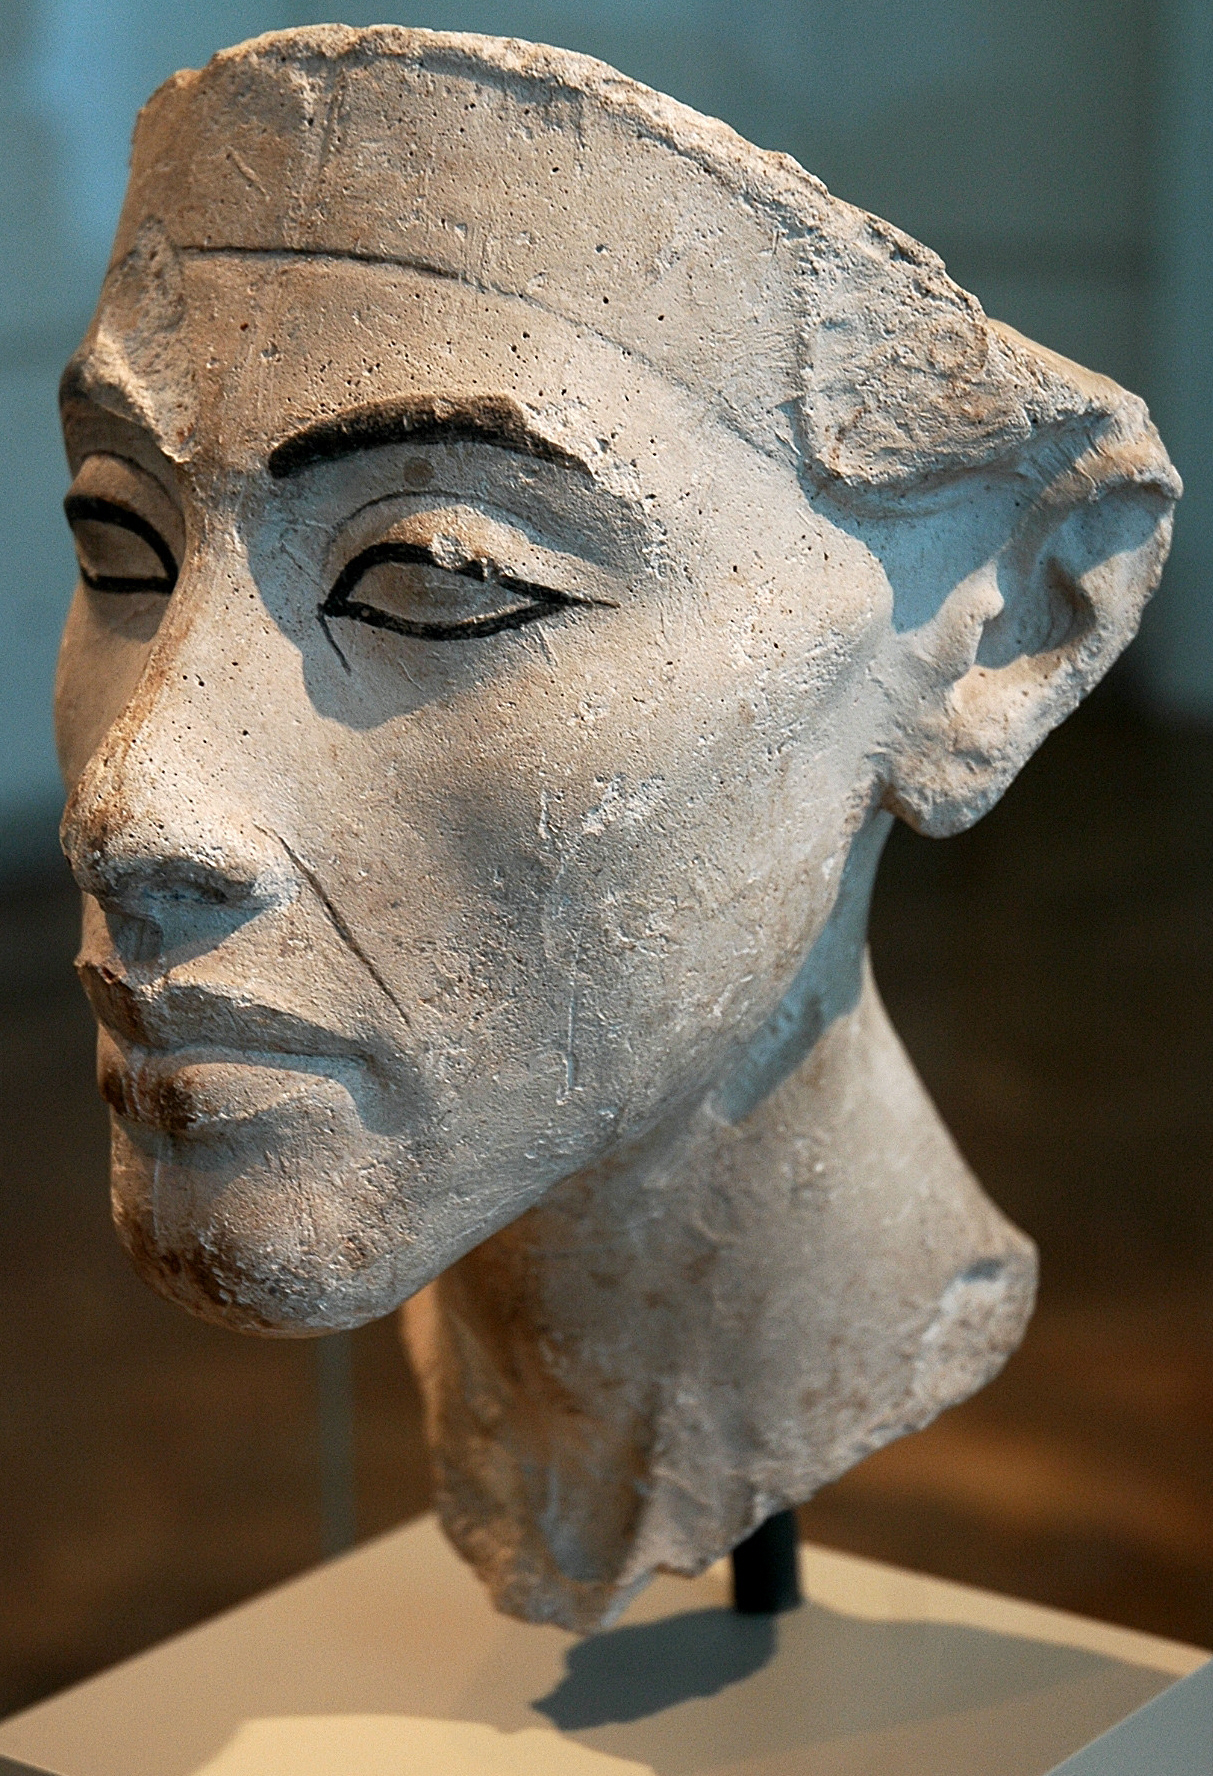 King akhenaten submited images